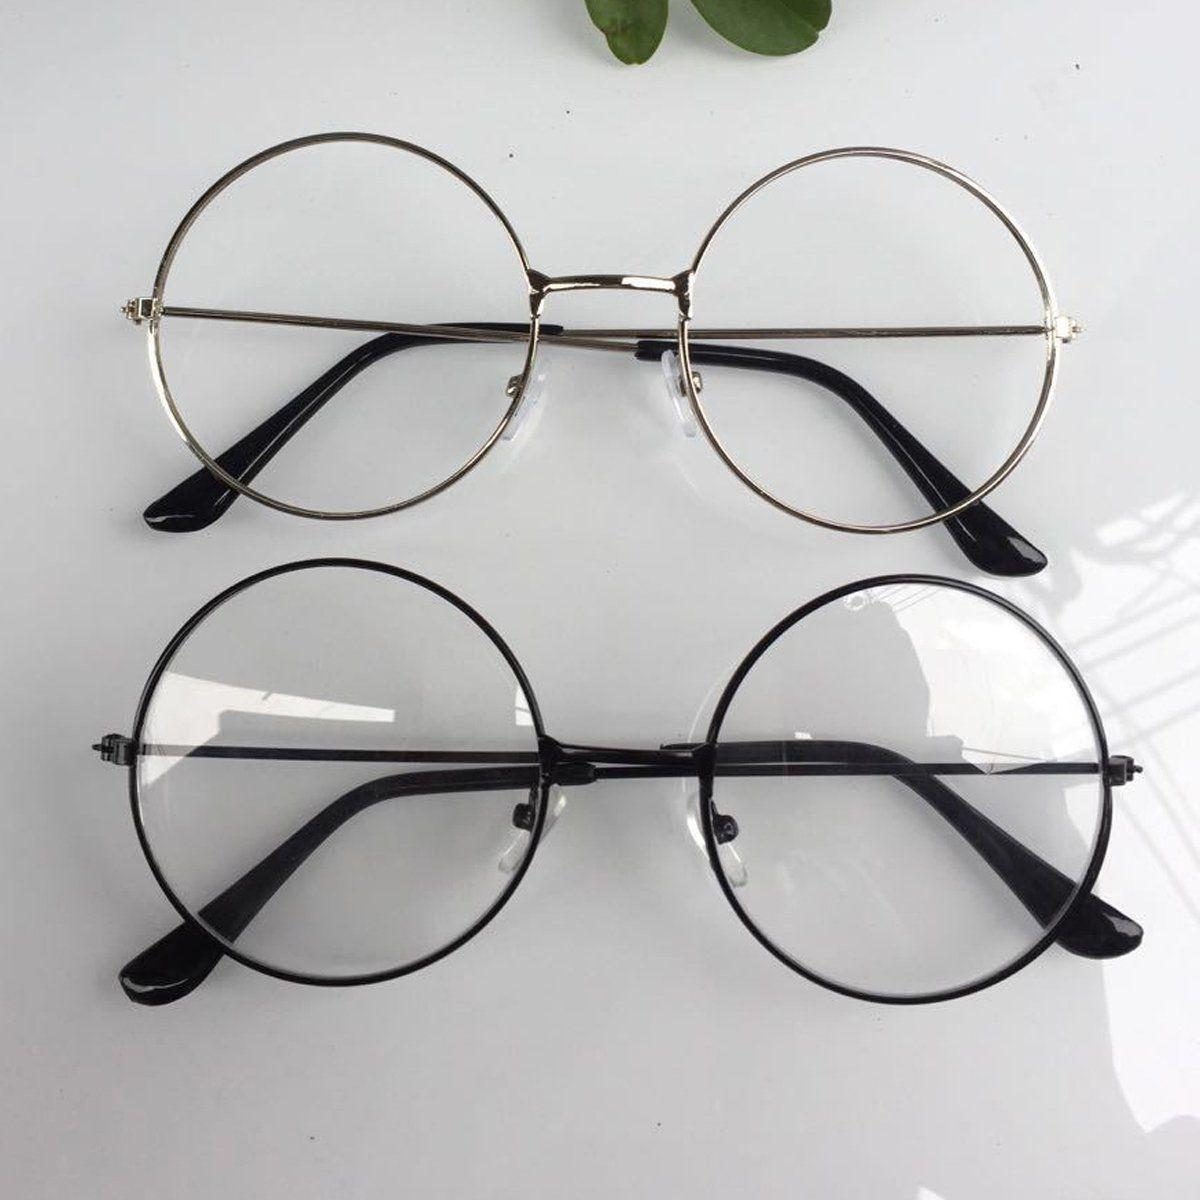 New! Large Oversized Frame Lens Glasses